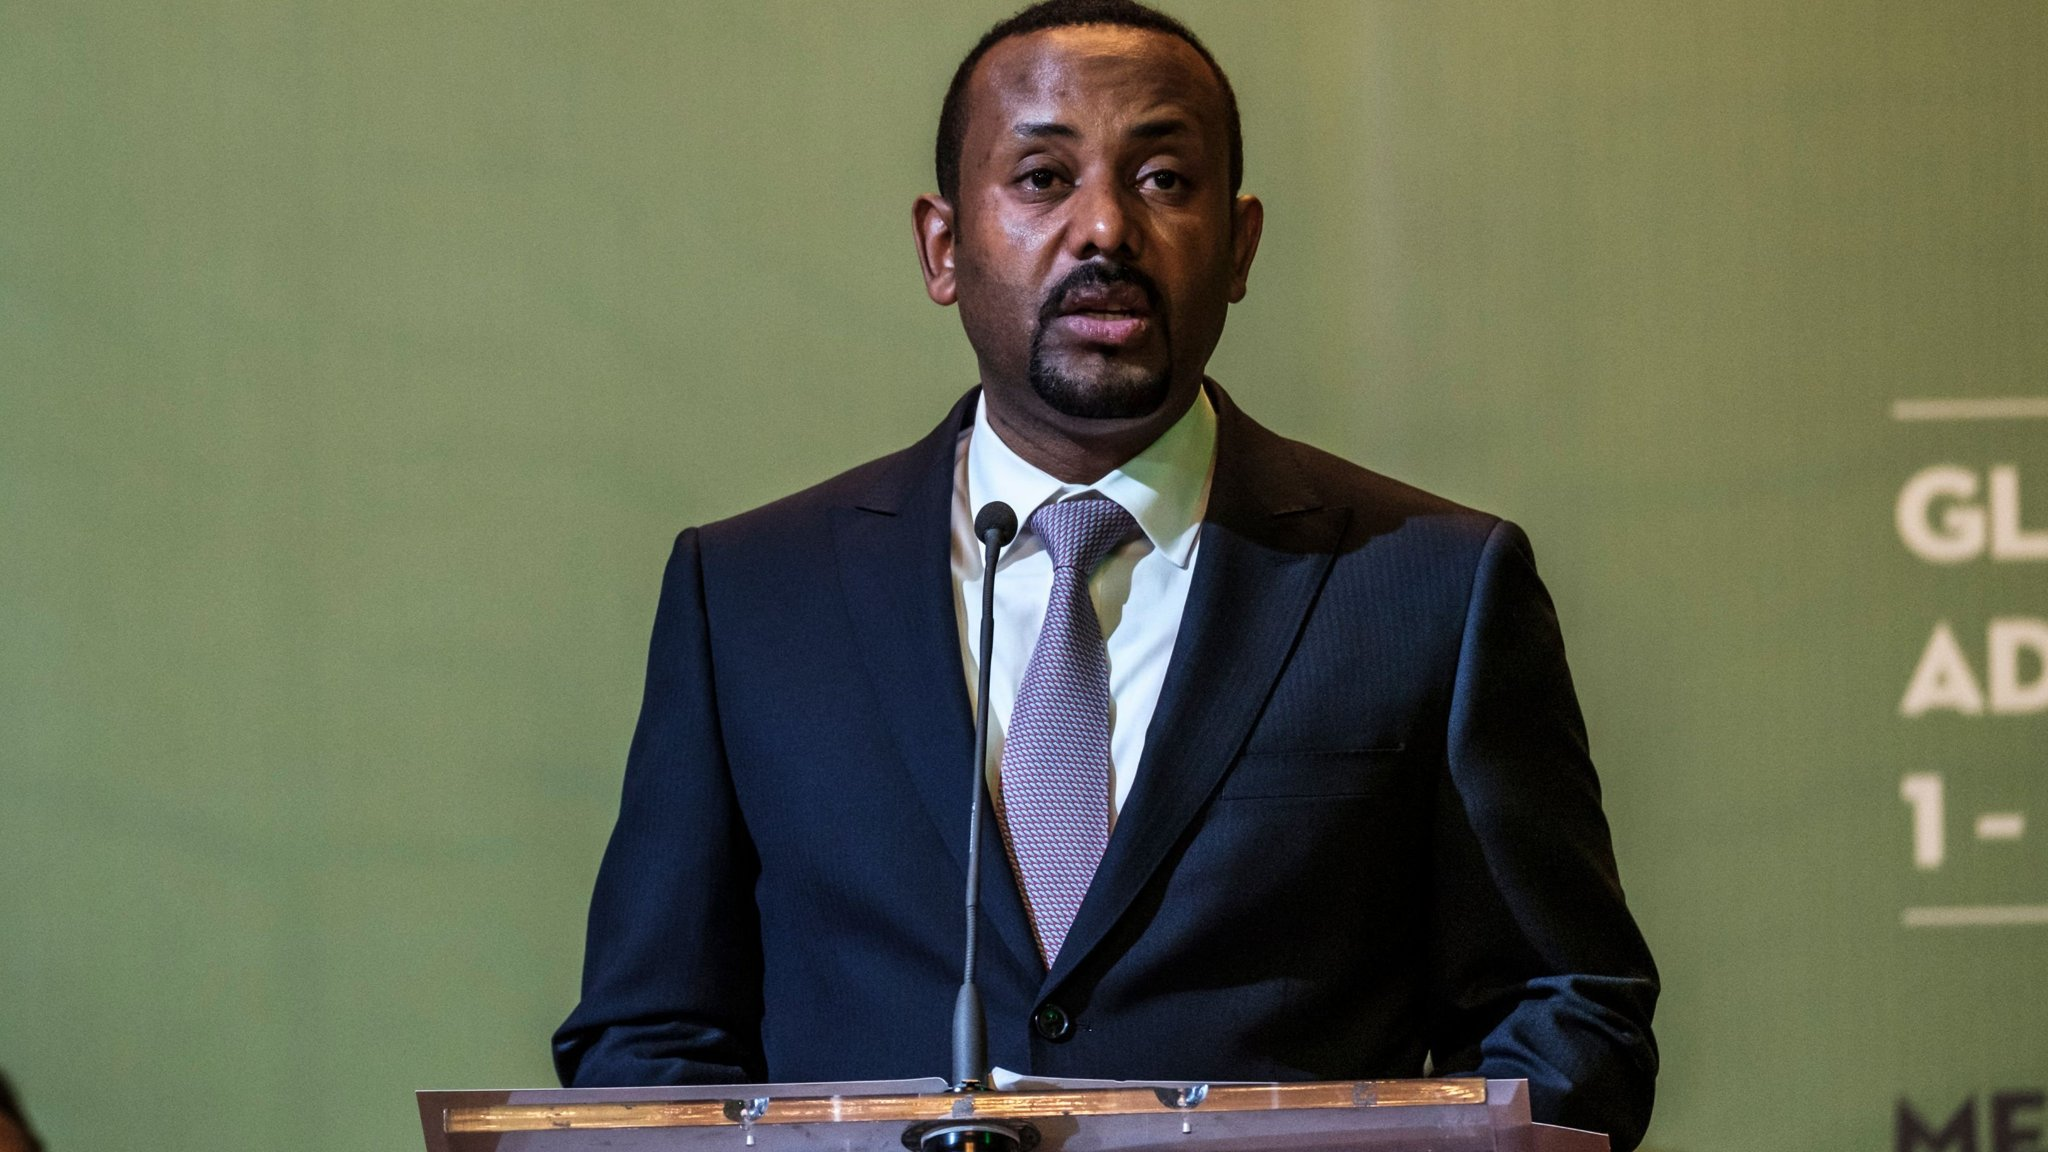 Ethiopia's path to prosperity is opening up under Abiy Ahmed